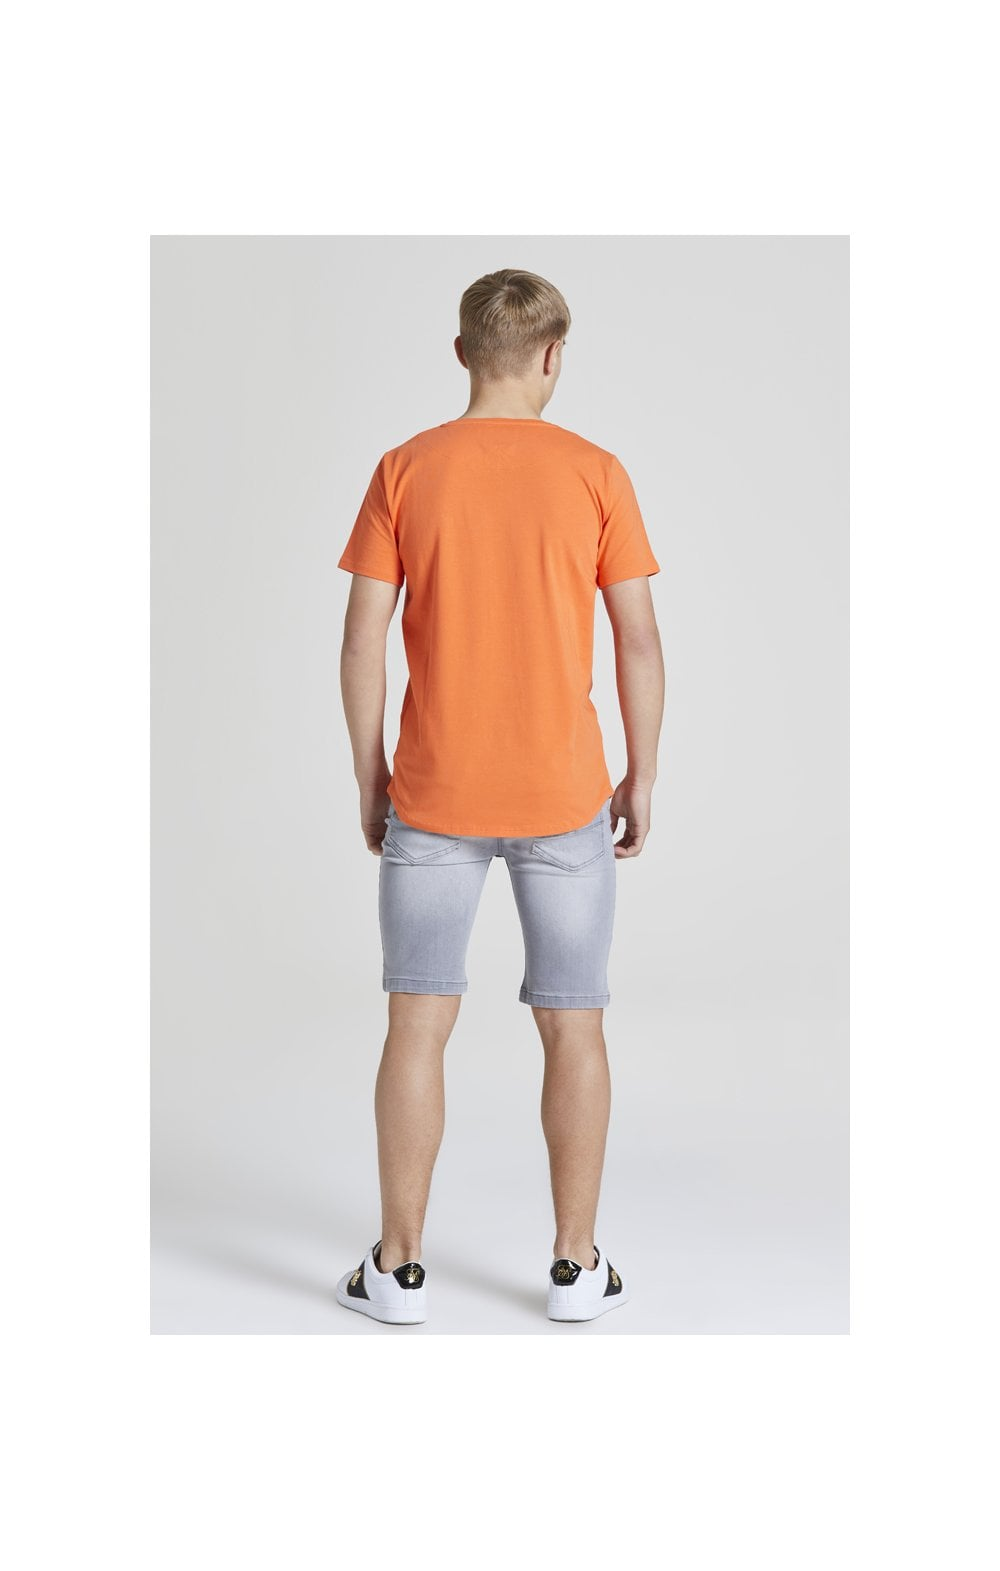 Illusive London Core Tee - Orange (5)